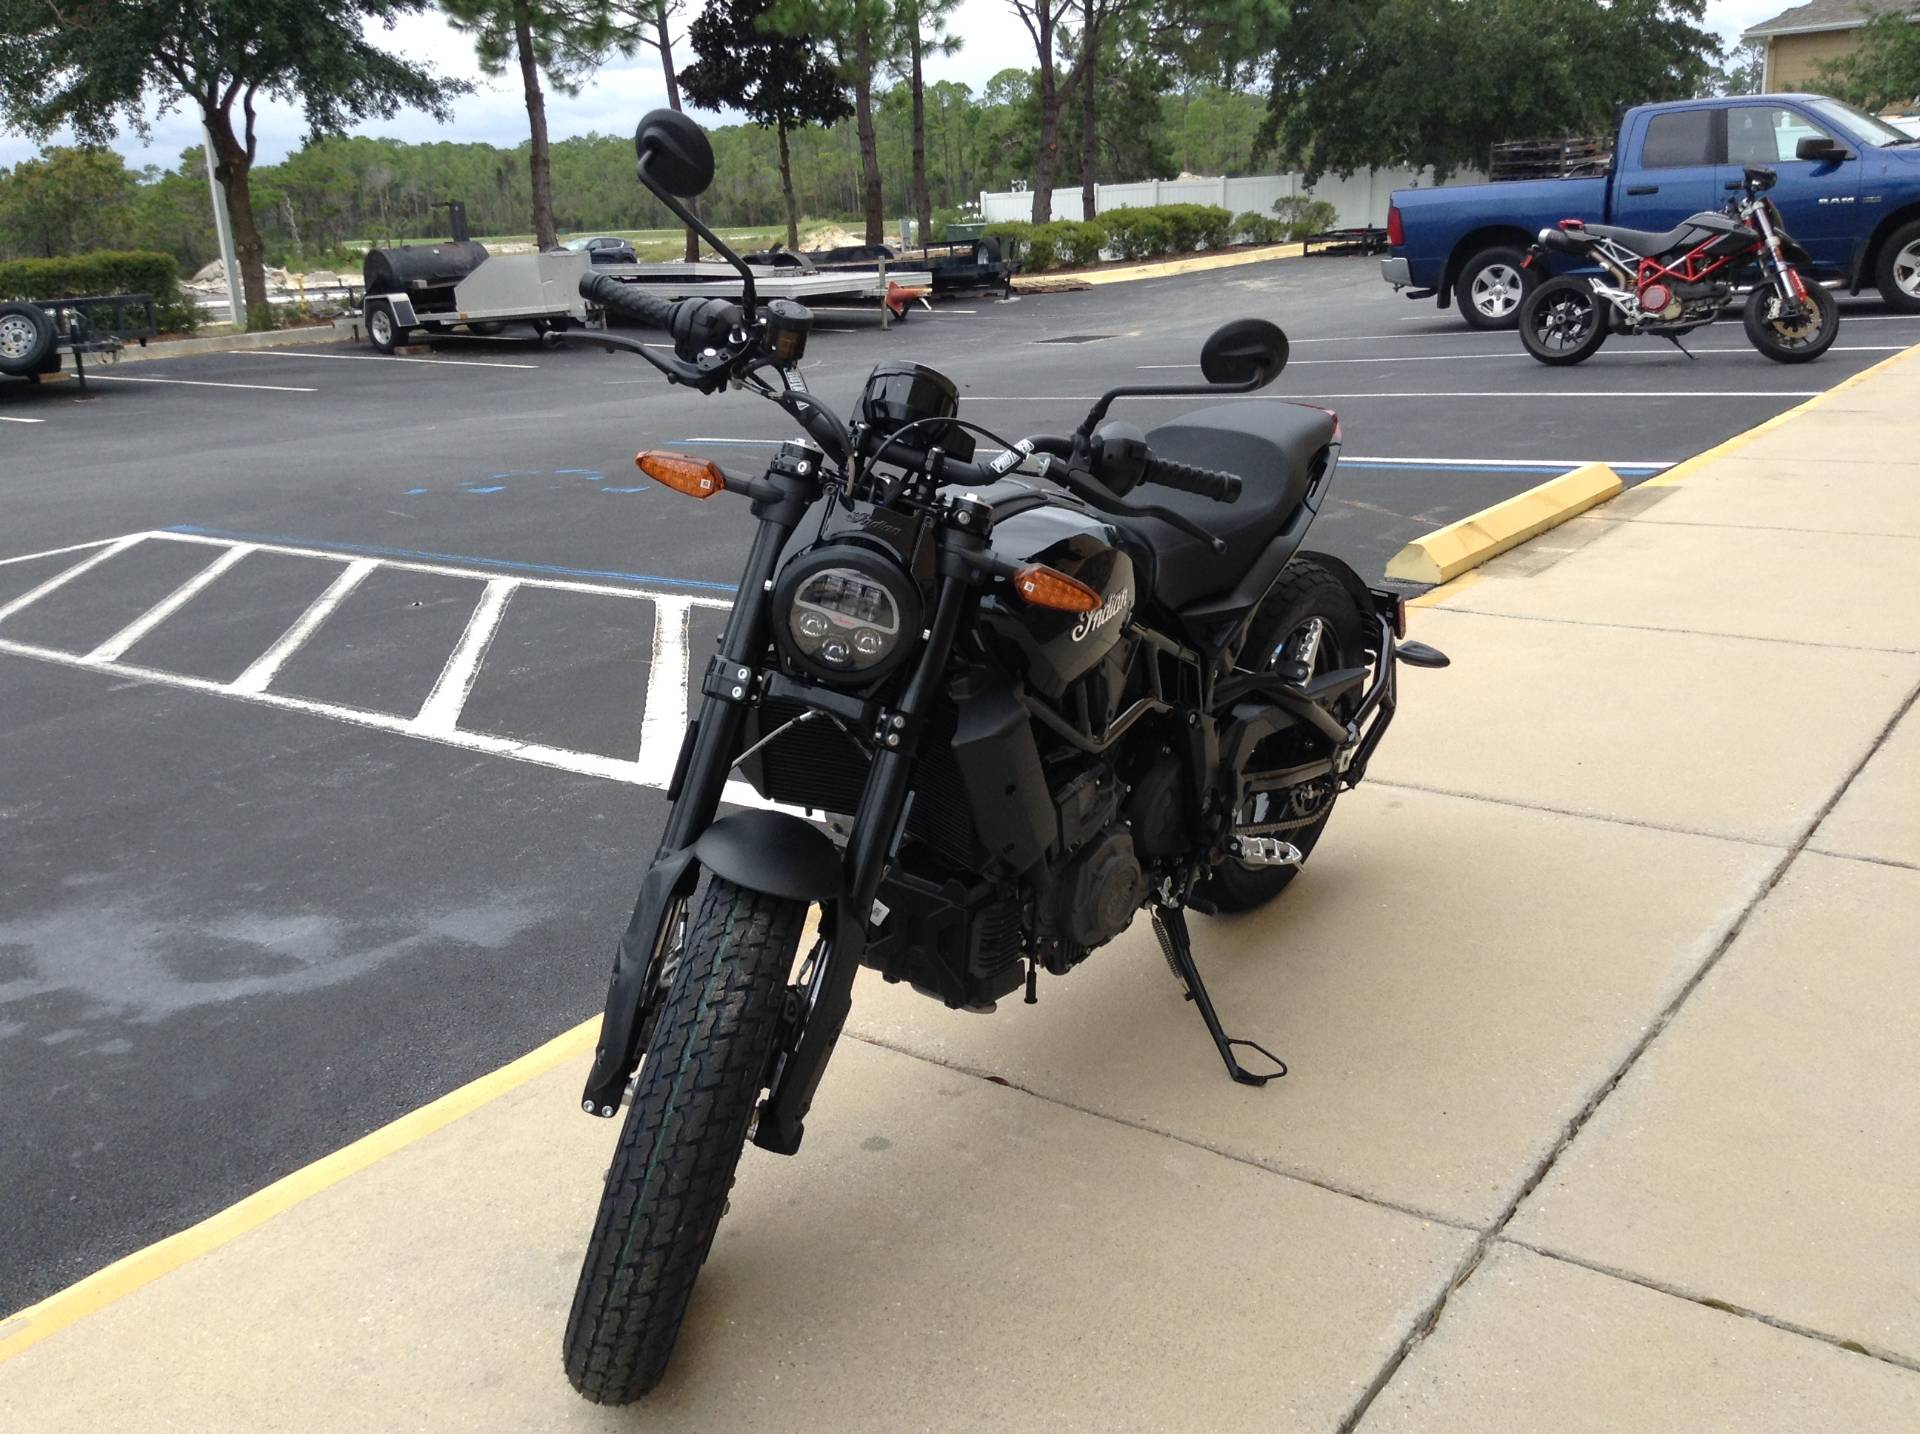 2020 Indian FTR 1200 in Panama City Beach, Florida - Photo 13